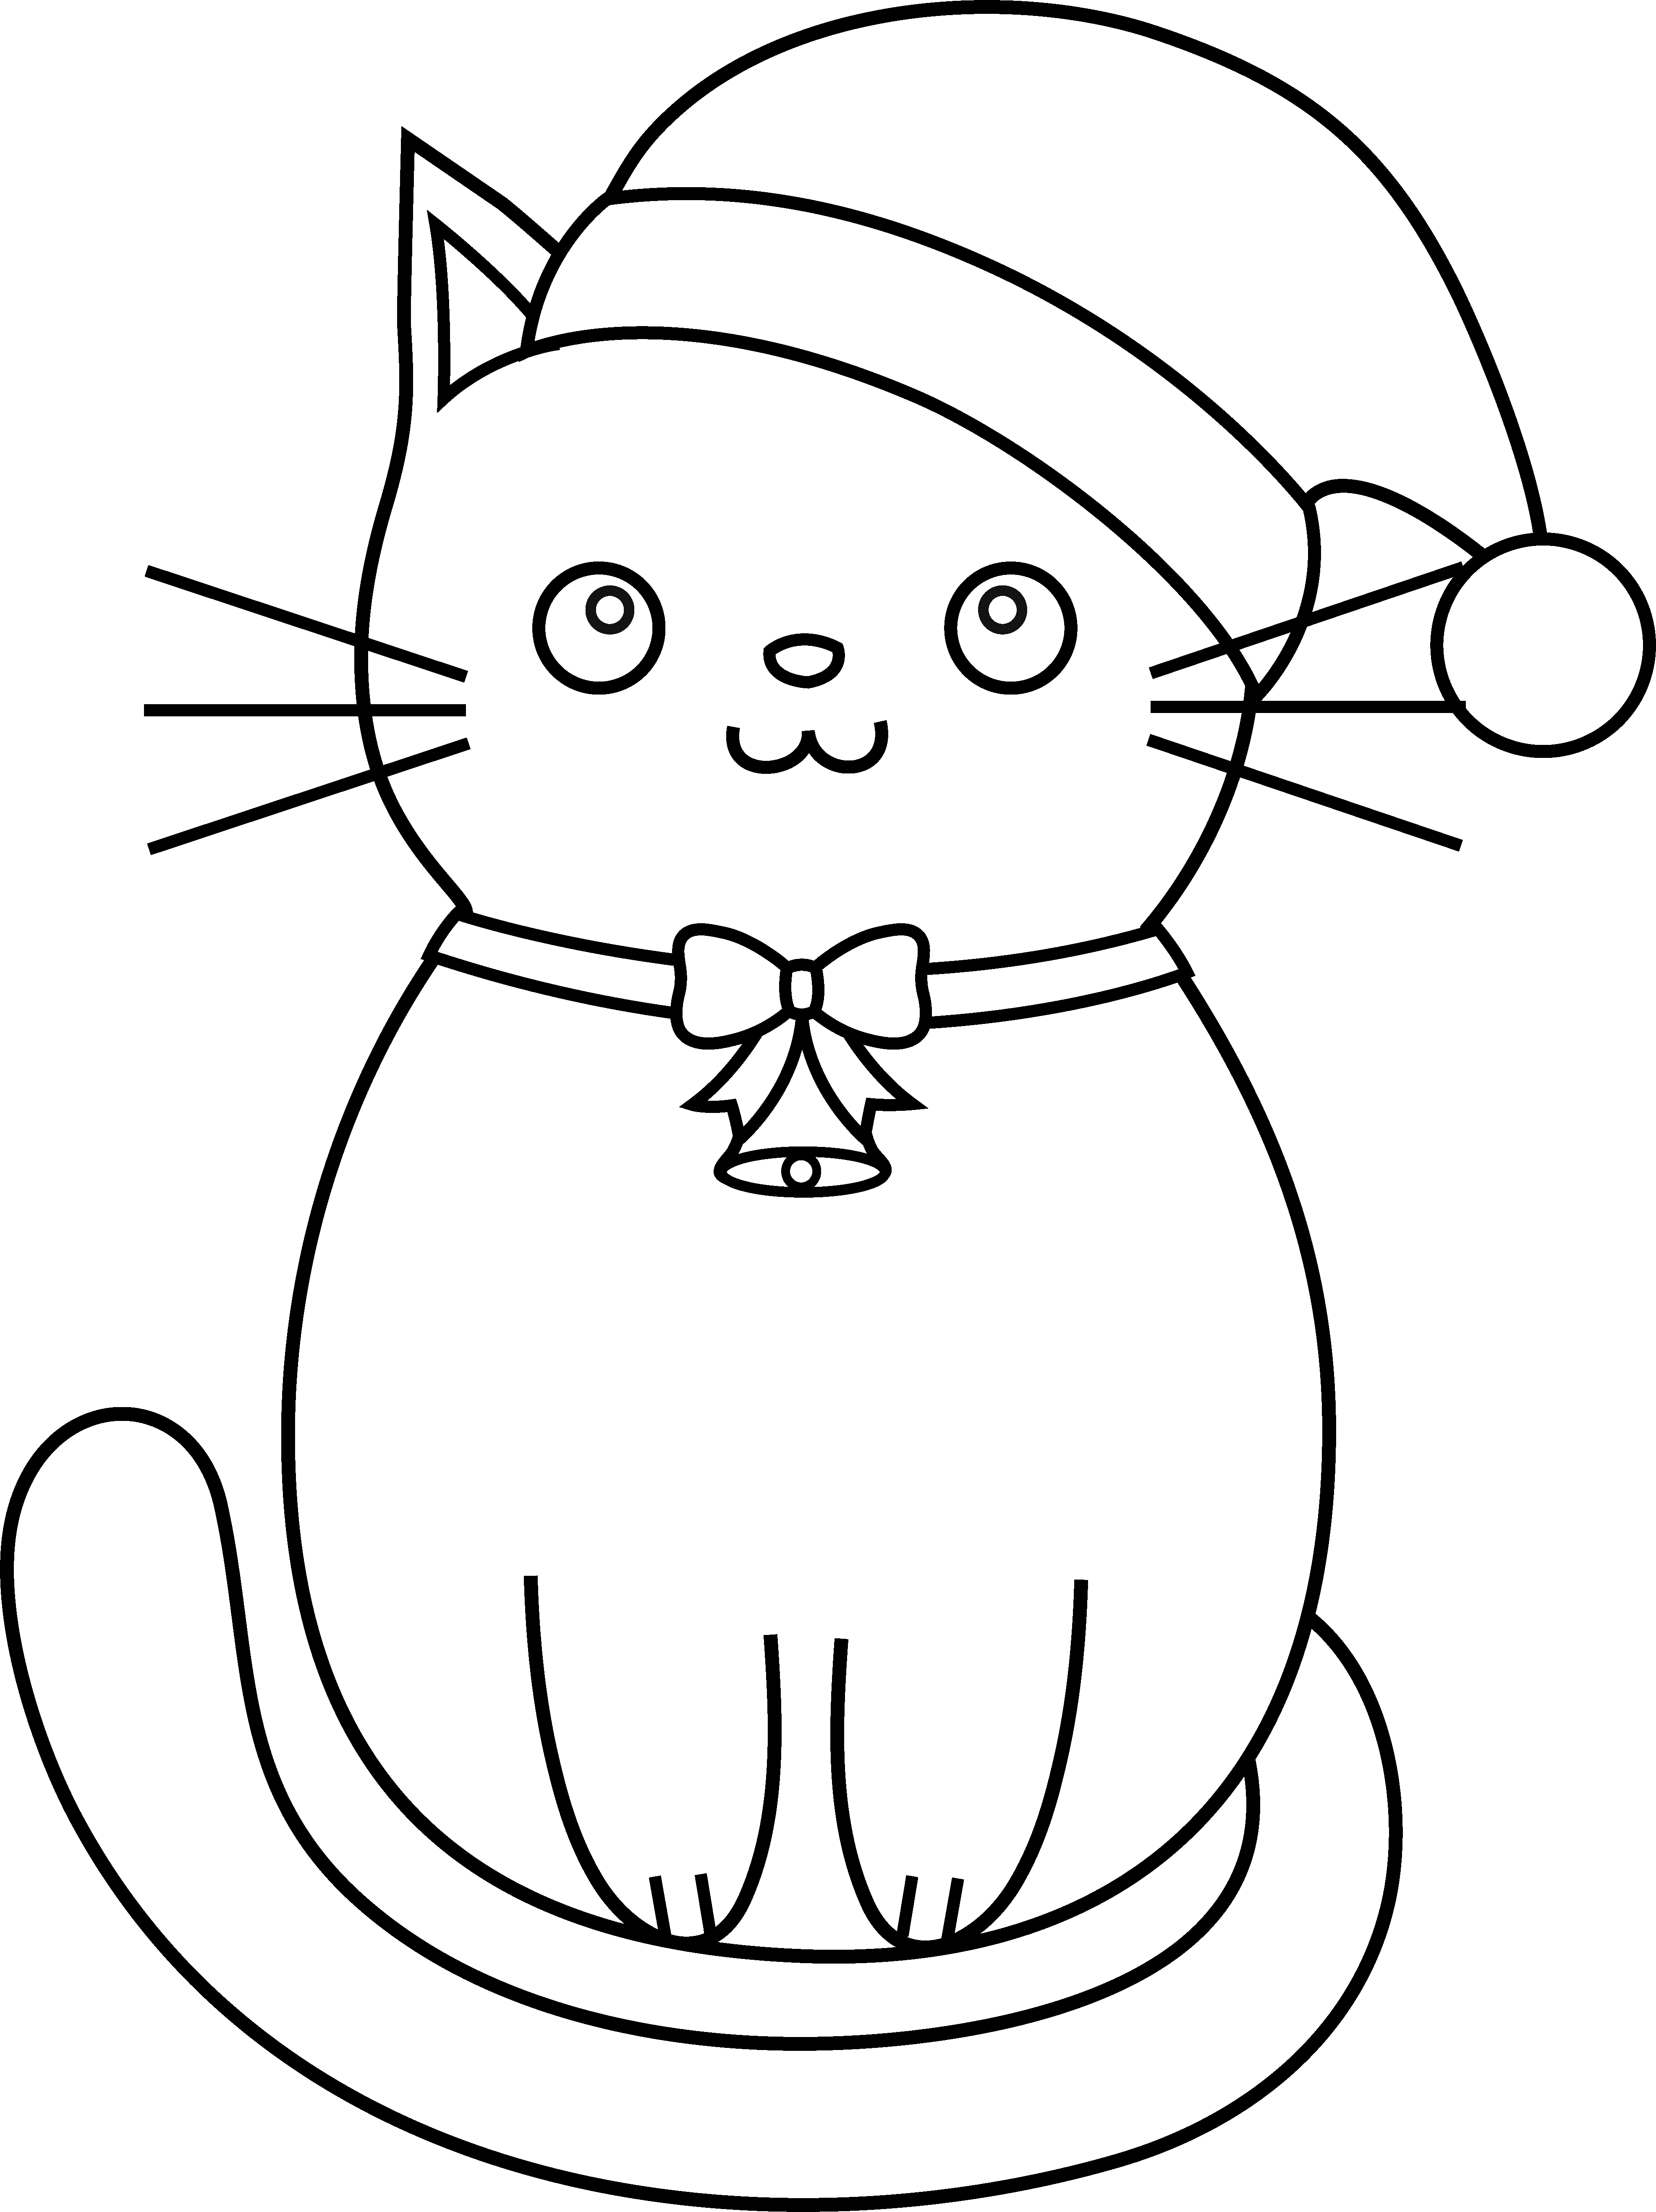 coloring pictures of kittens kitten coloring pages best coloring pages for kids pictures of coloring kittens